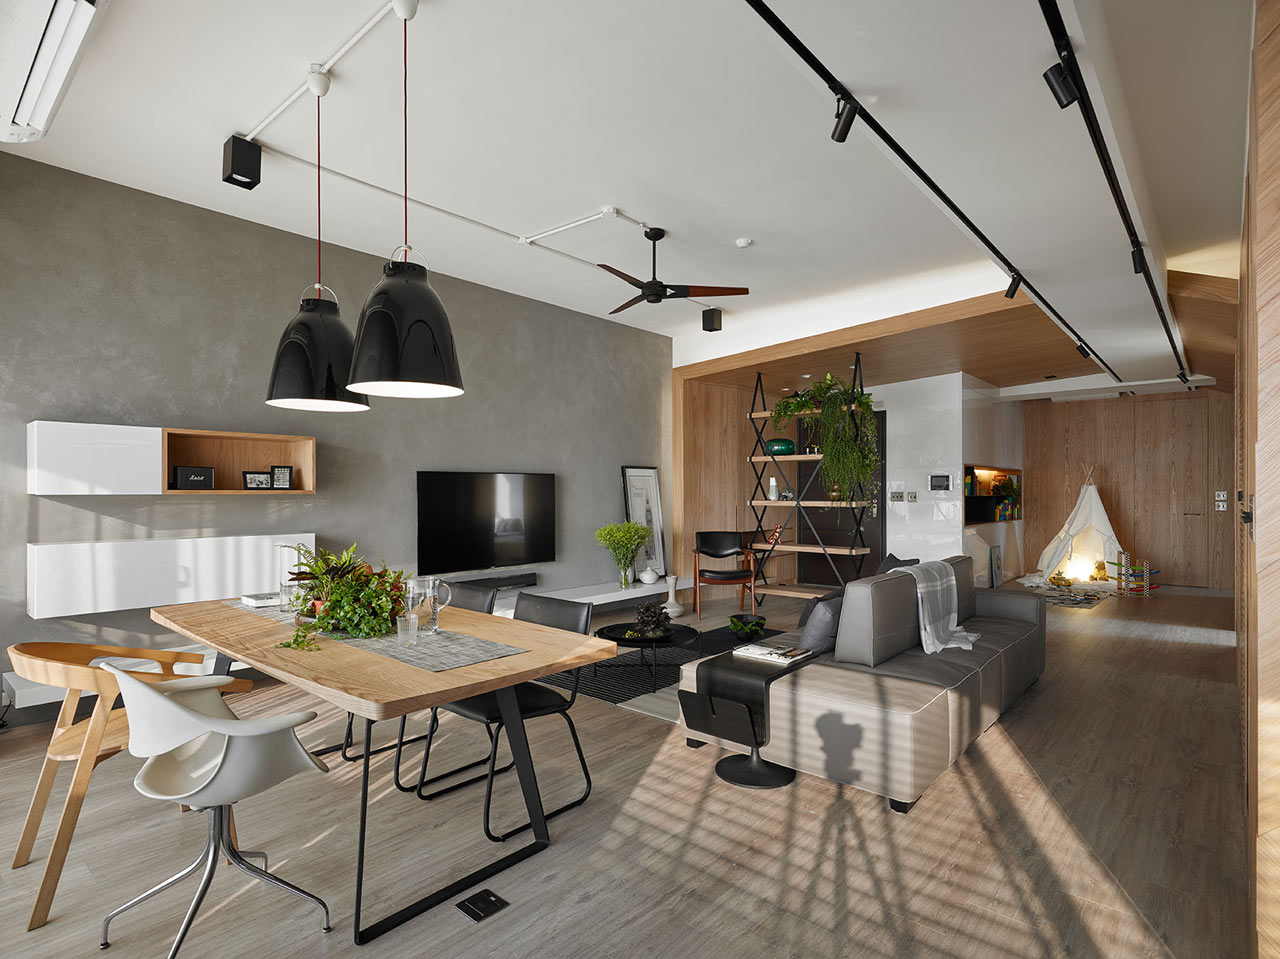 Interior Design Main An Apartment In Taiwan That Keeps The Children Mind